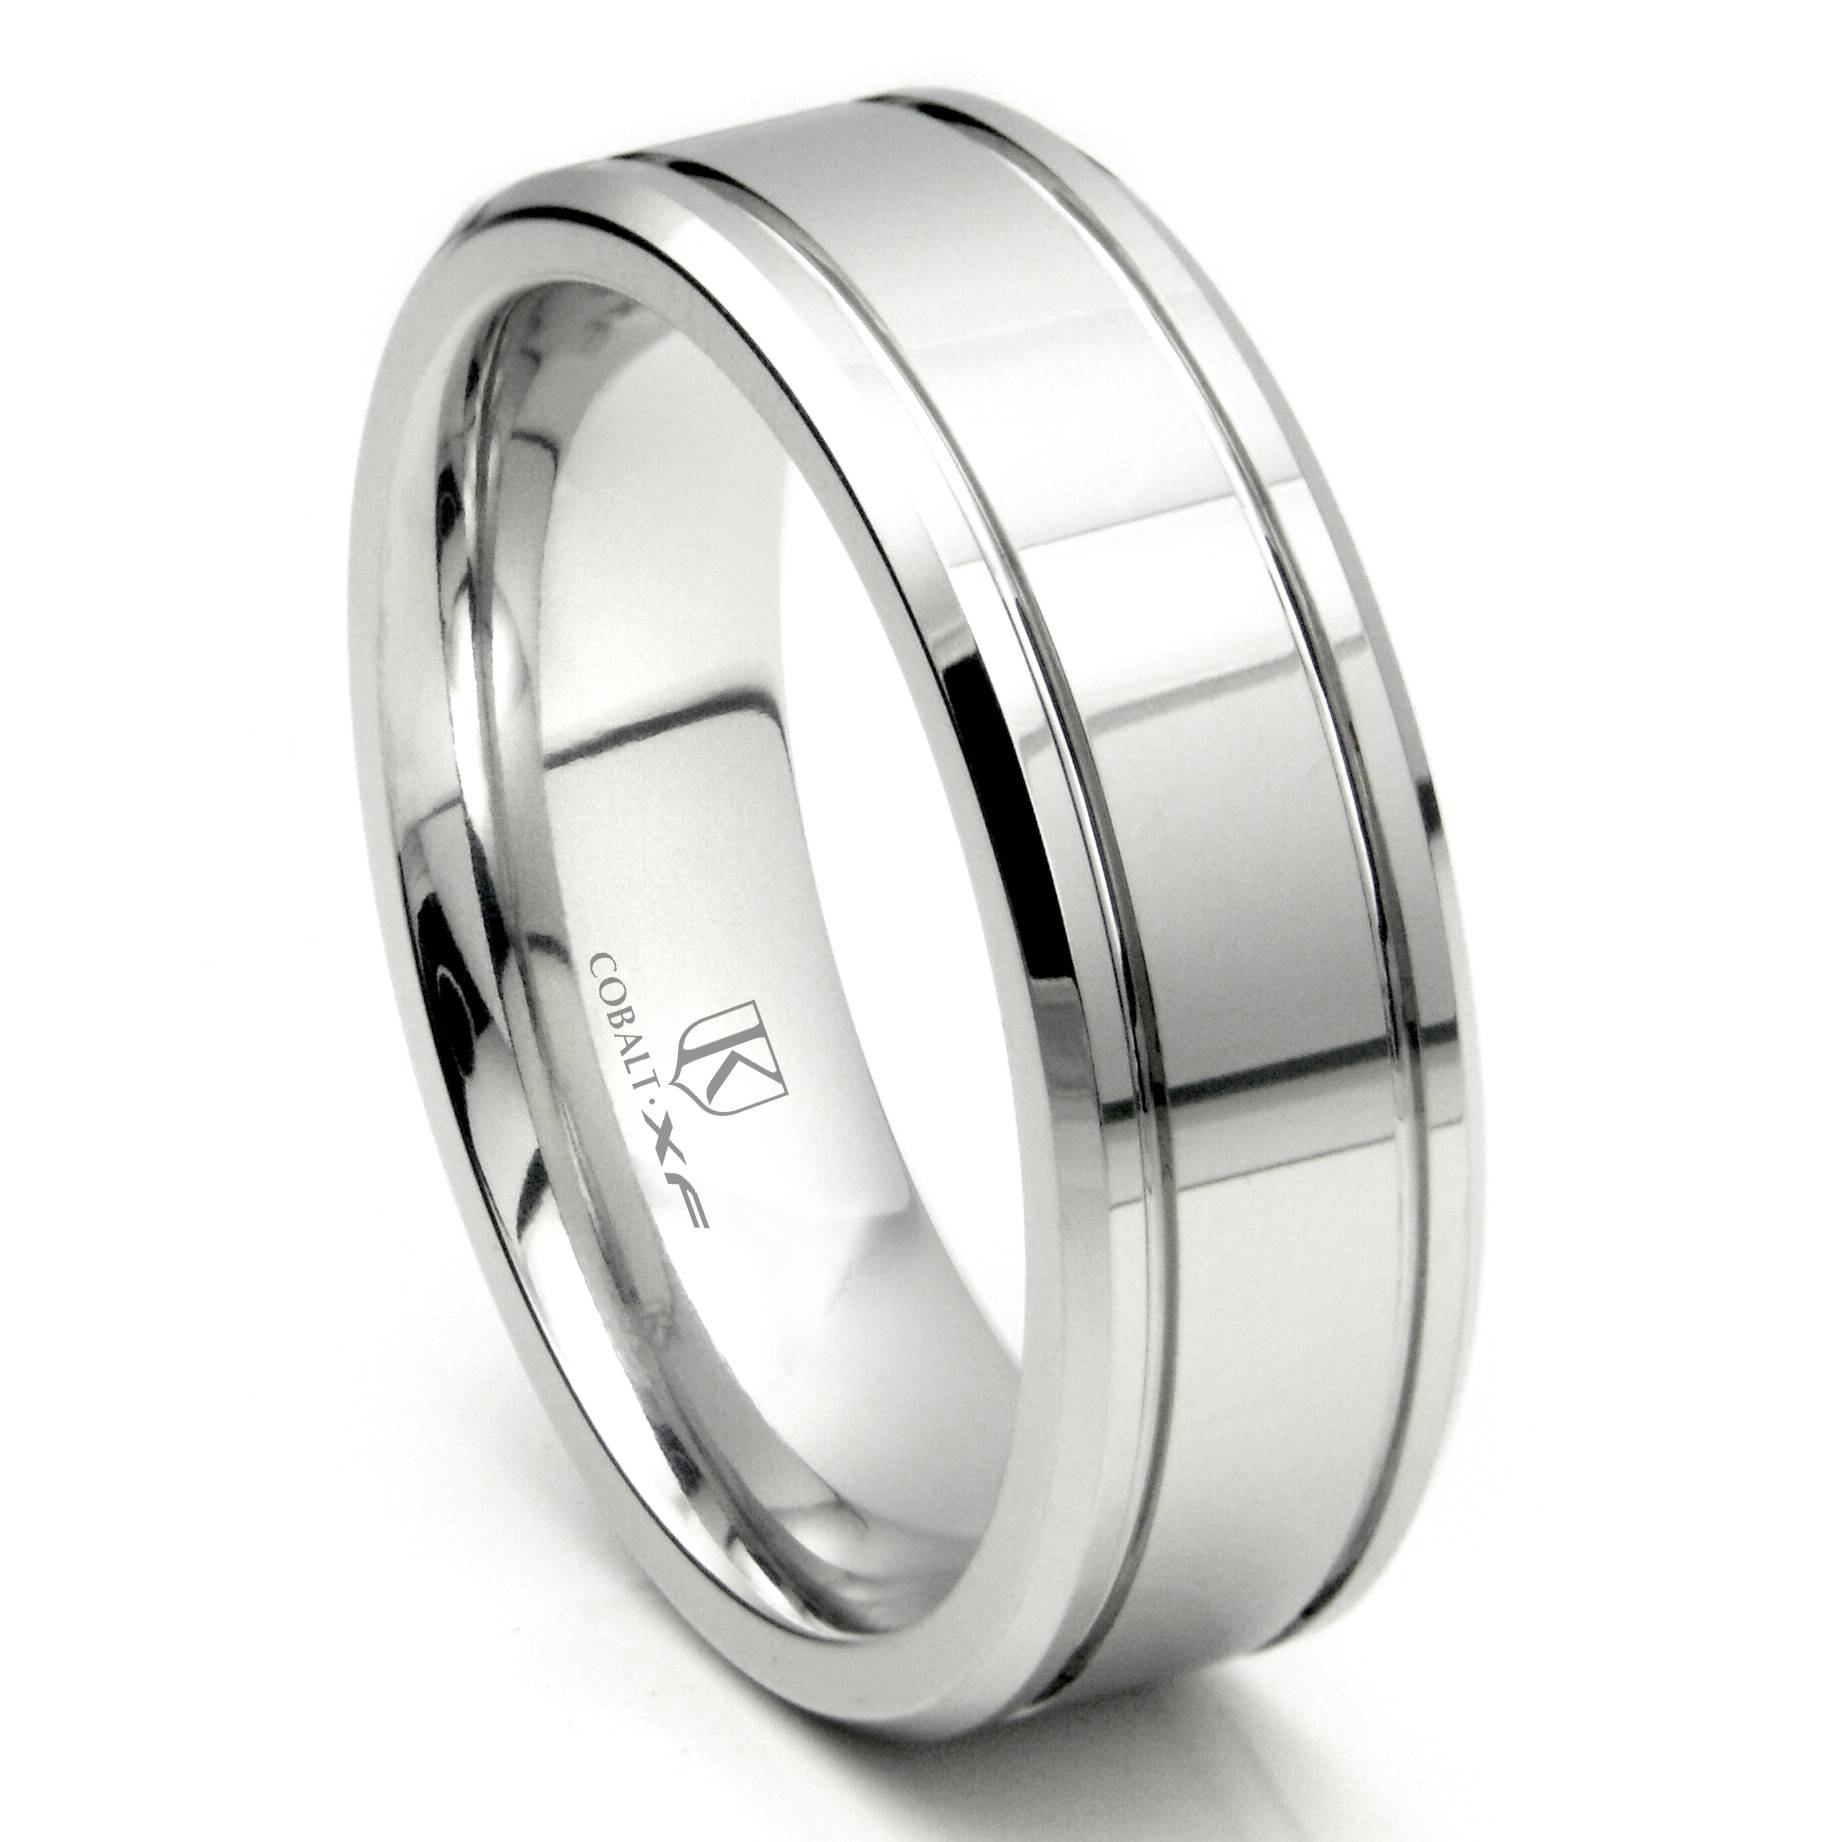 Cobalt Xf Chrome 8Mm Double Groove High Polish Wedding Band Ring Inside 8Mm White Gold Wedding Bands (View 6 of 15)